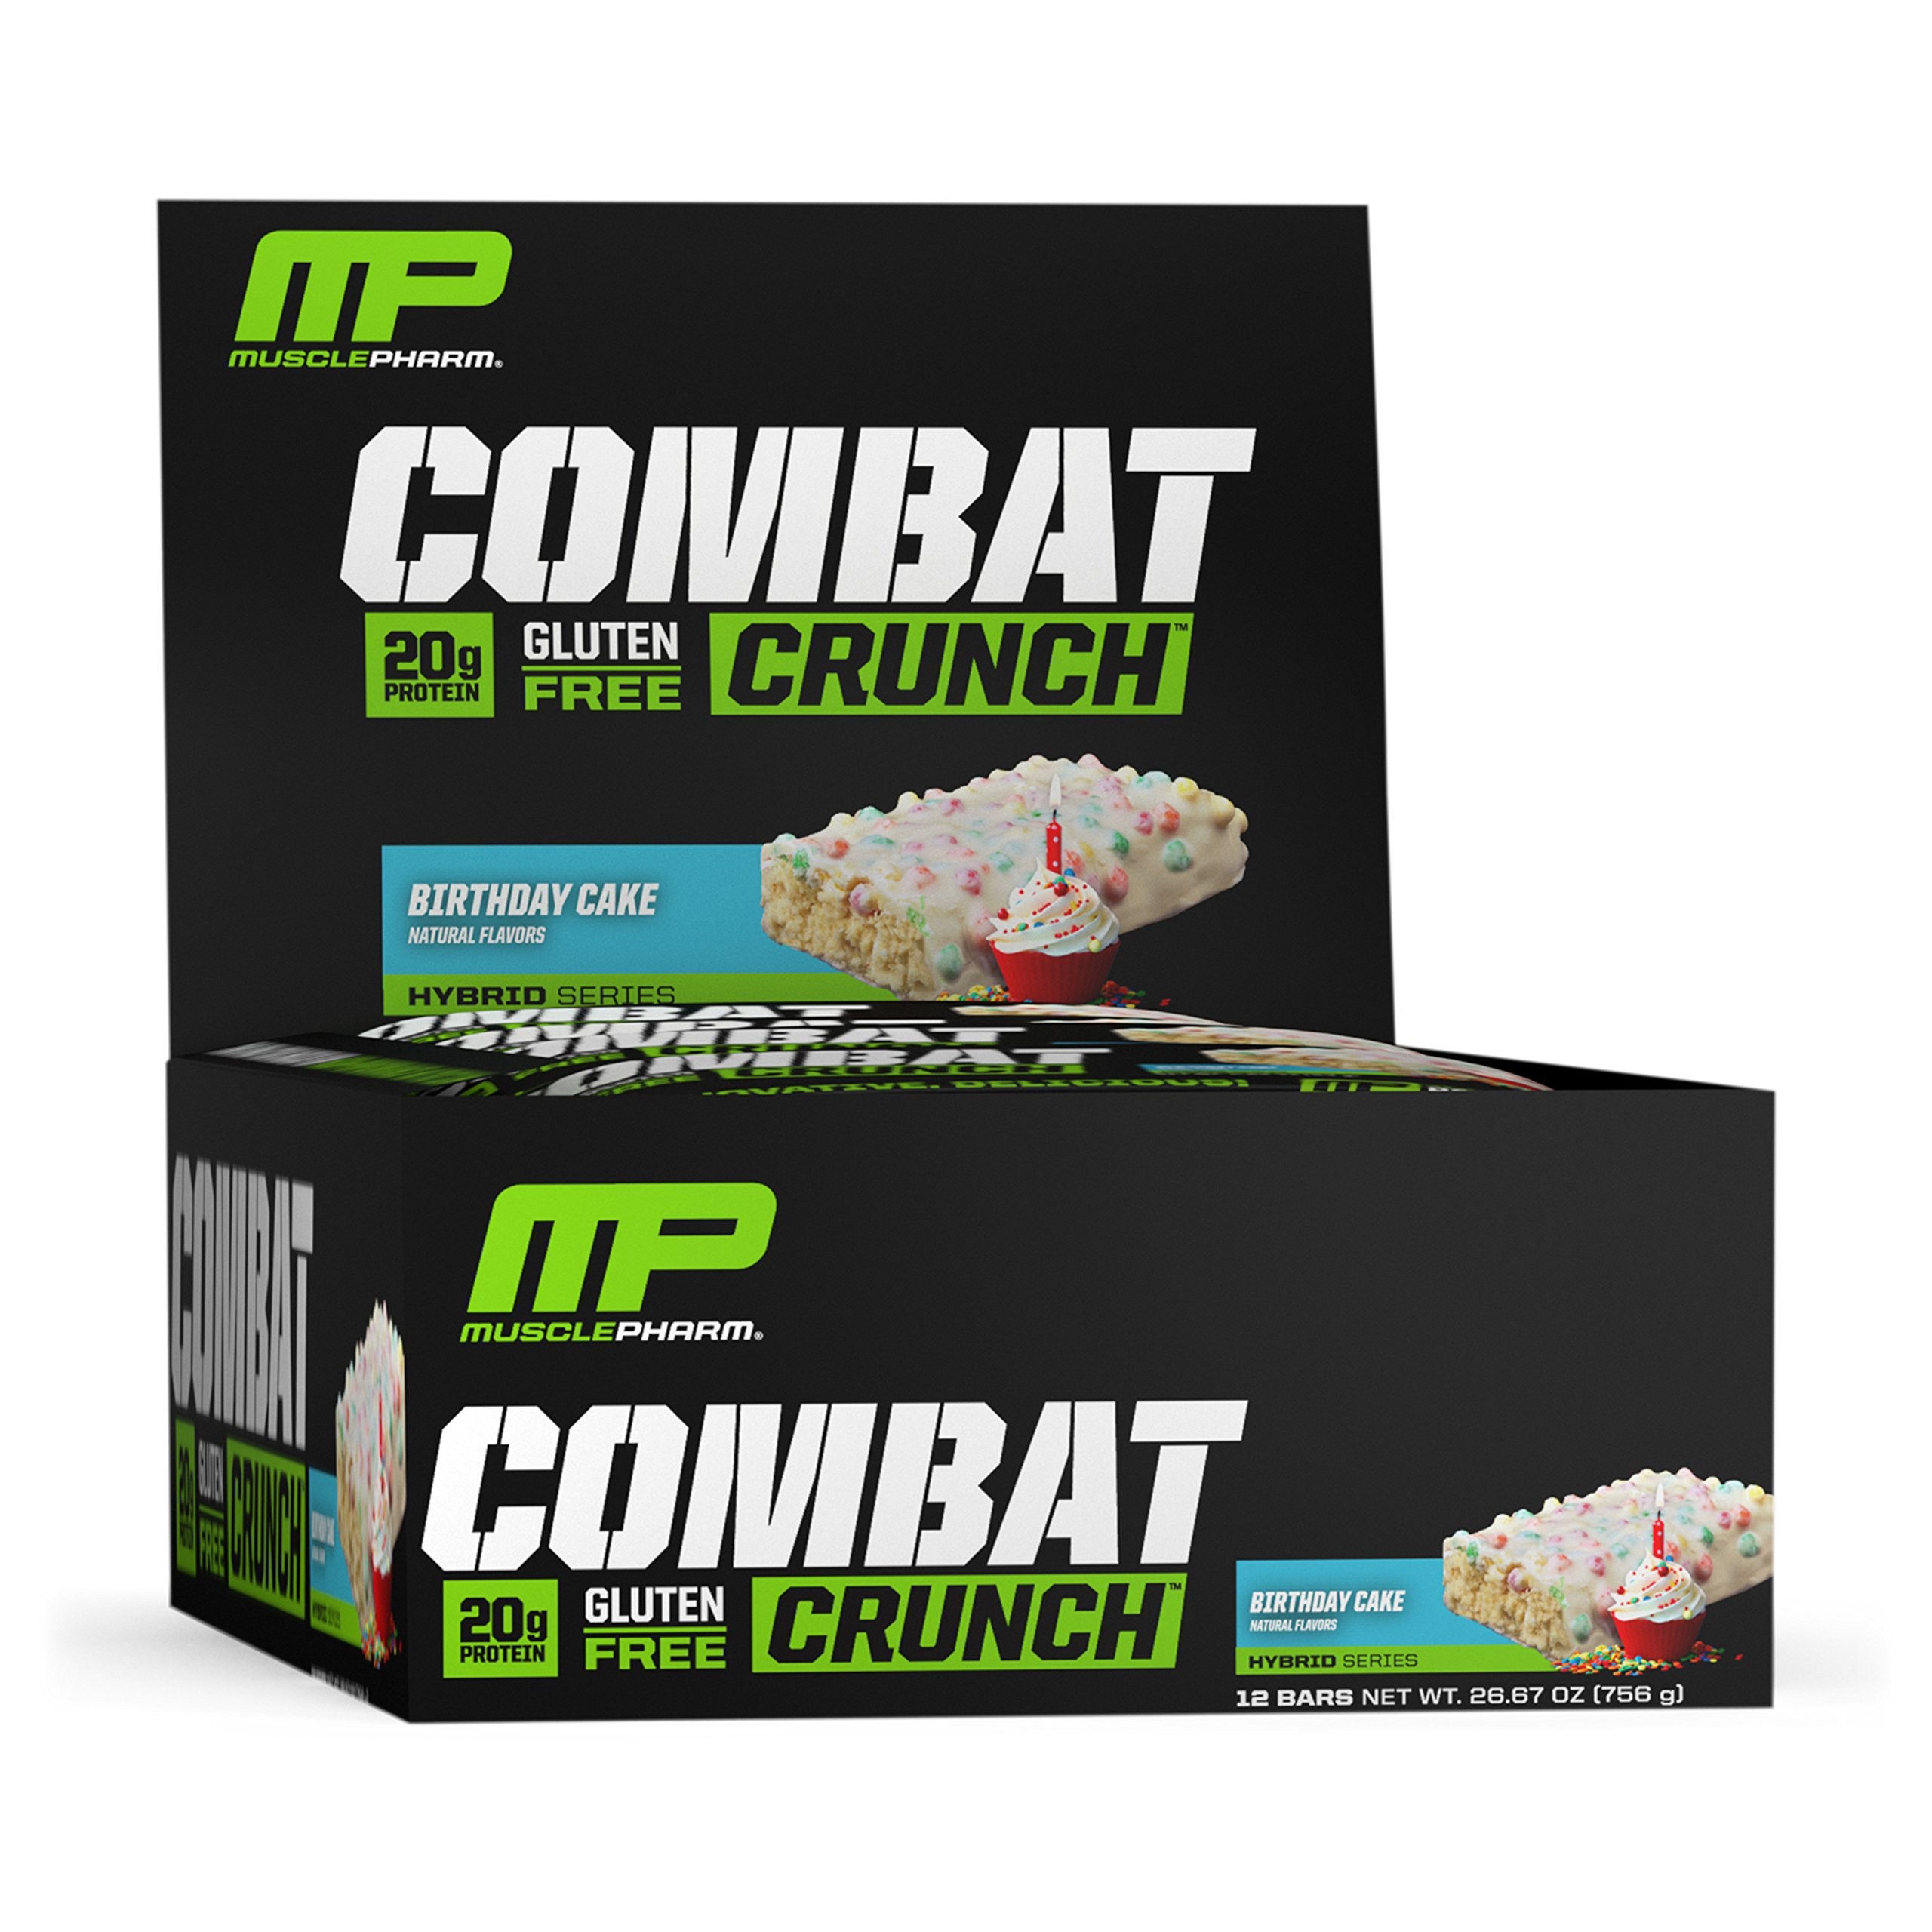 MusclePharm Combat Crunch Protein Bar, Multi-Layered Baked Bar, 20g Protein, Low Sugar, Low Carb, Gluten Free, Birthday Cake, 12 Bars